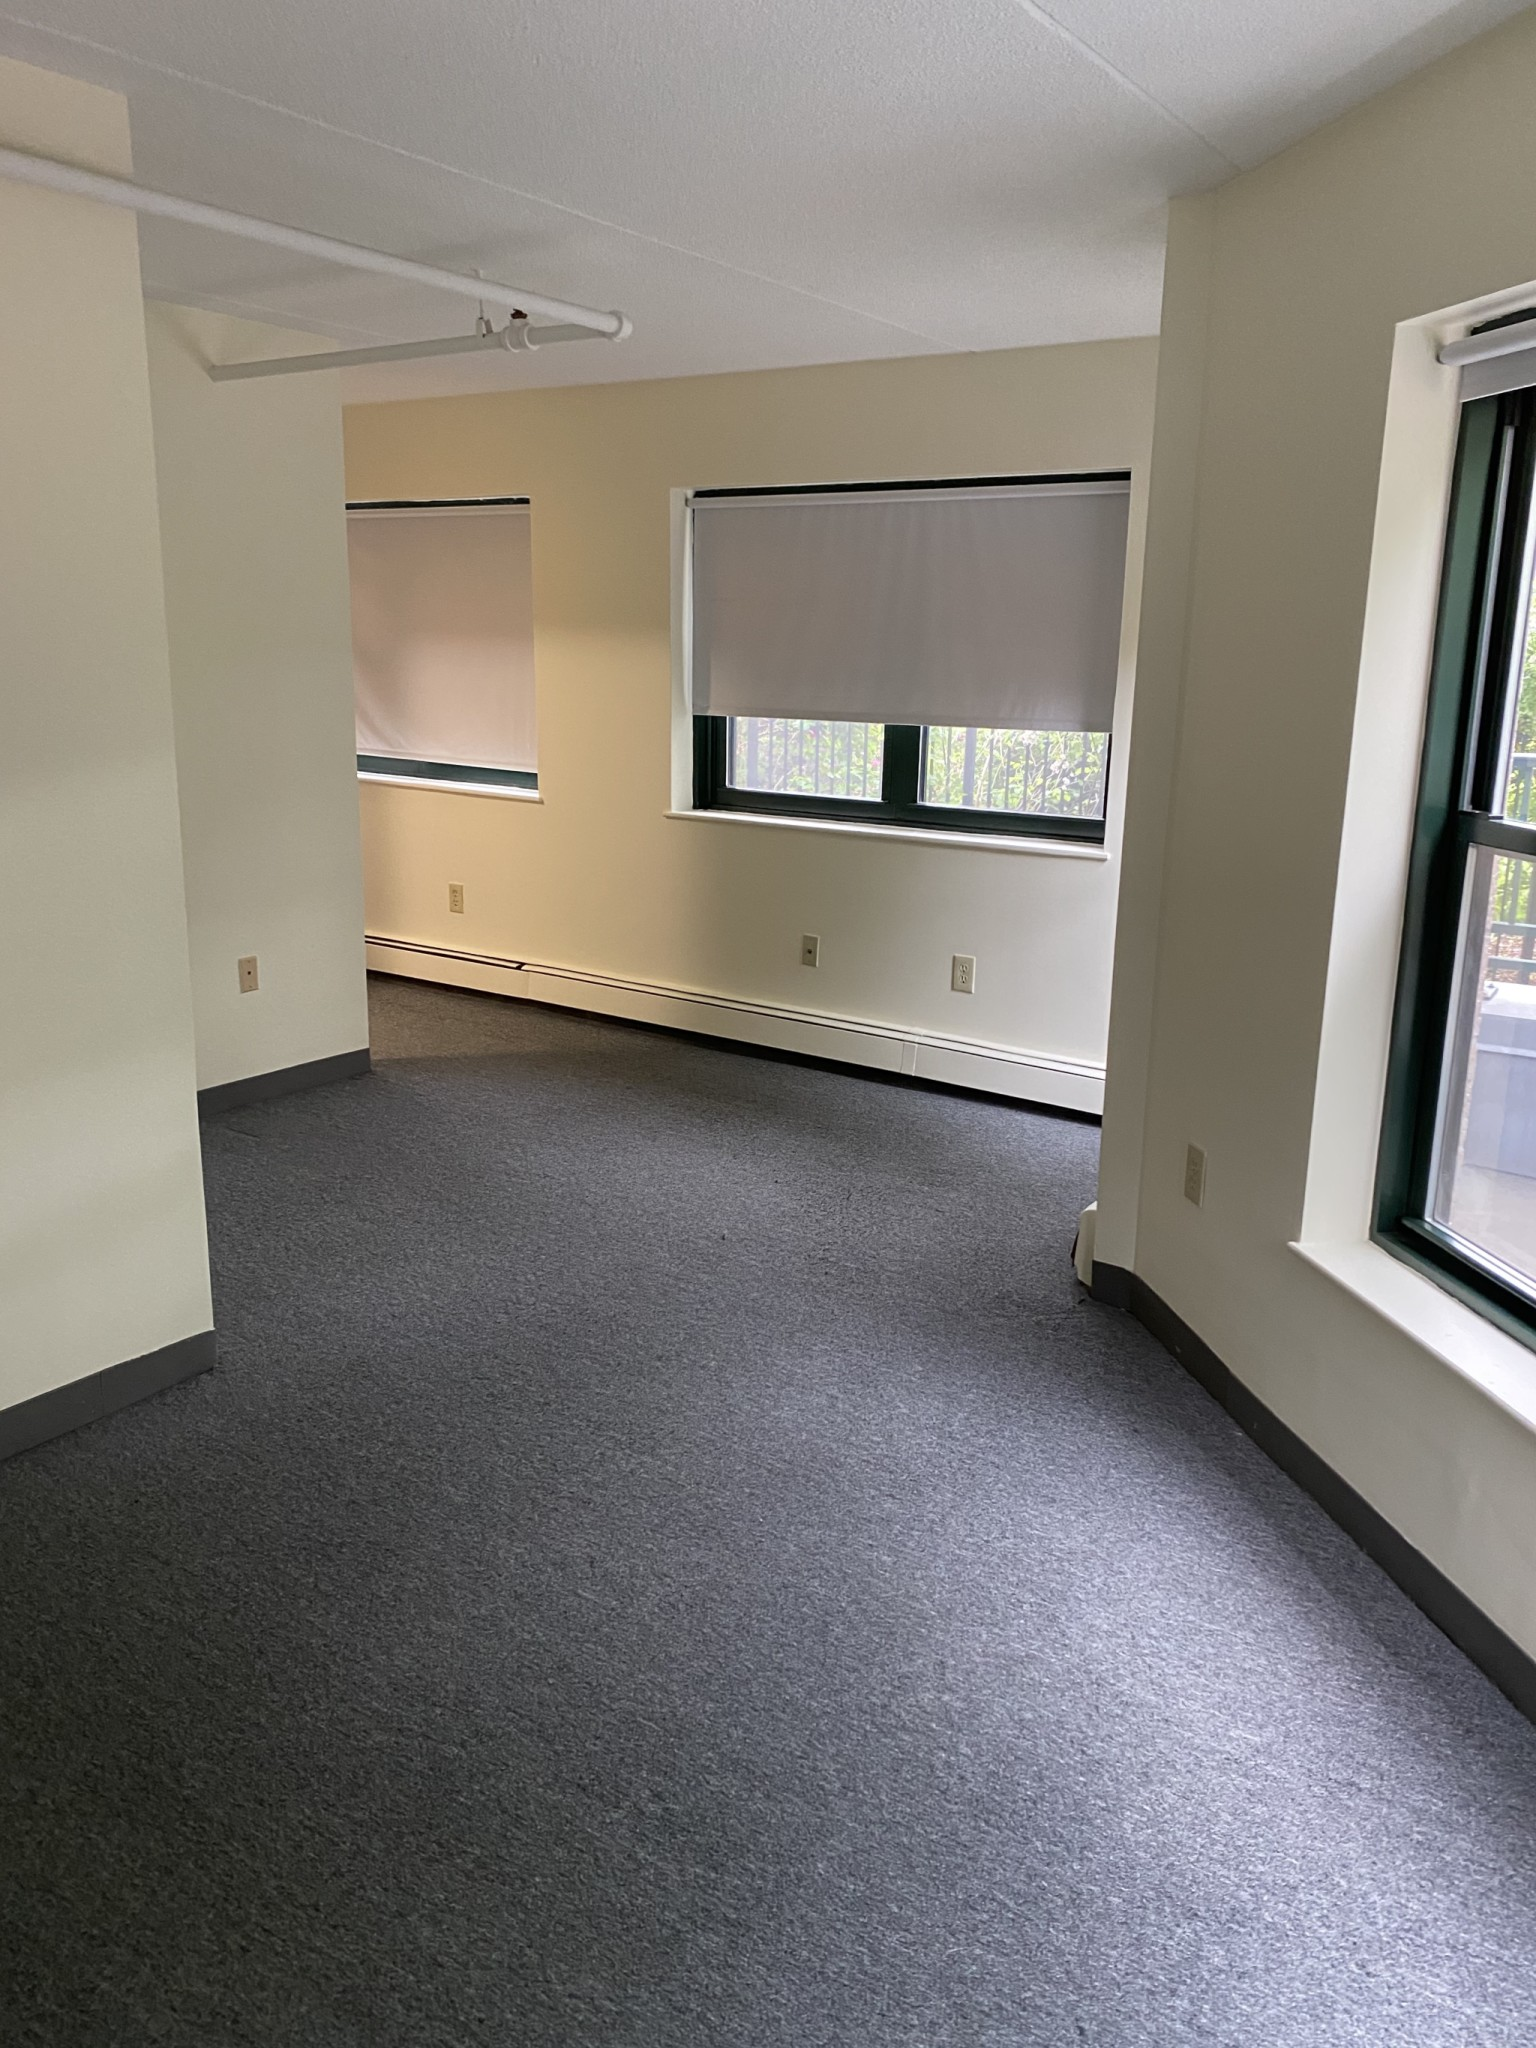 1 Bed, 1 Bath apartment in Boston, South End for $2,200